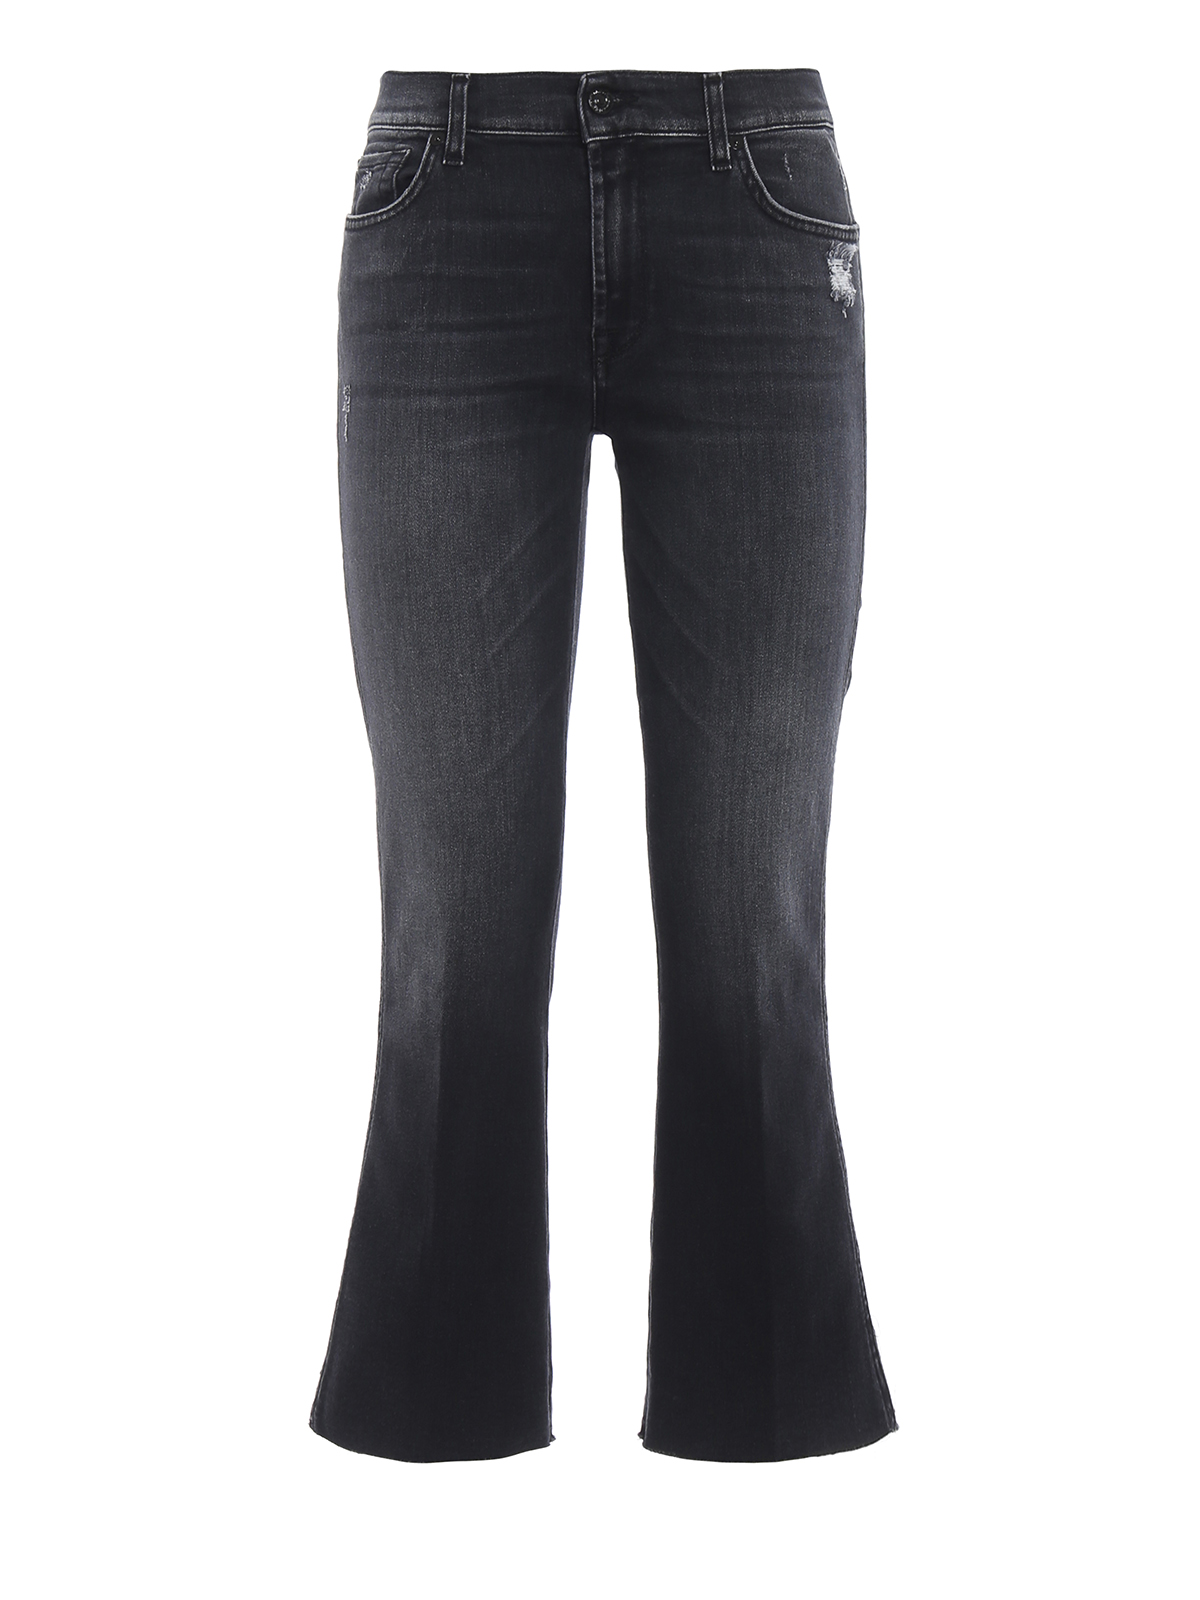 7 For All Mankind Jeans Cropped Boot a taglio vivo jeans